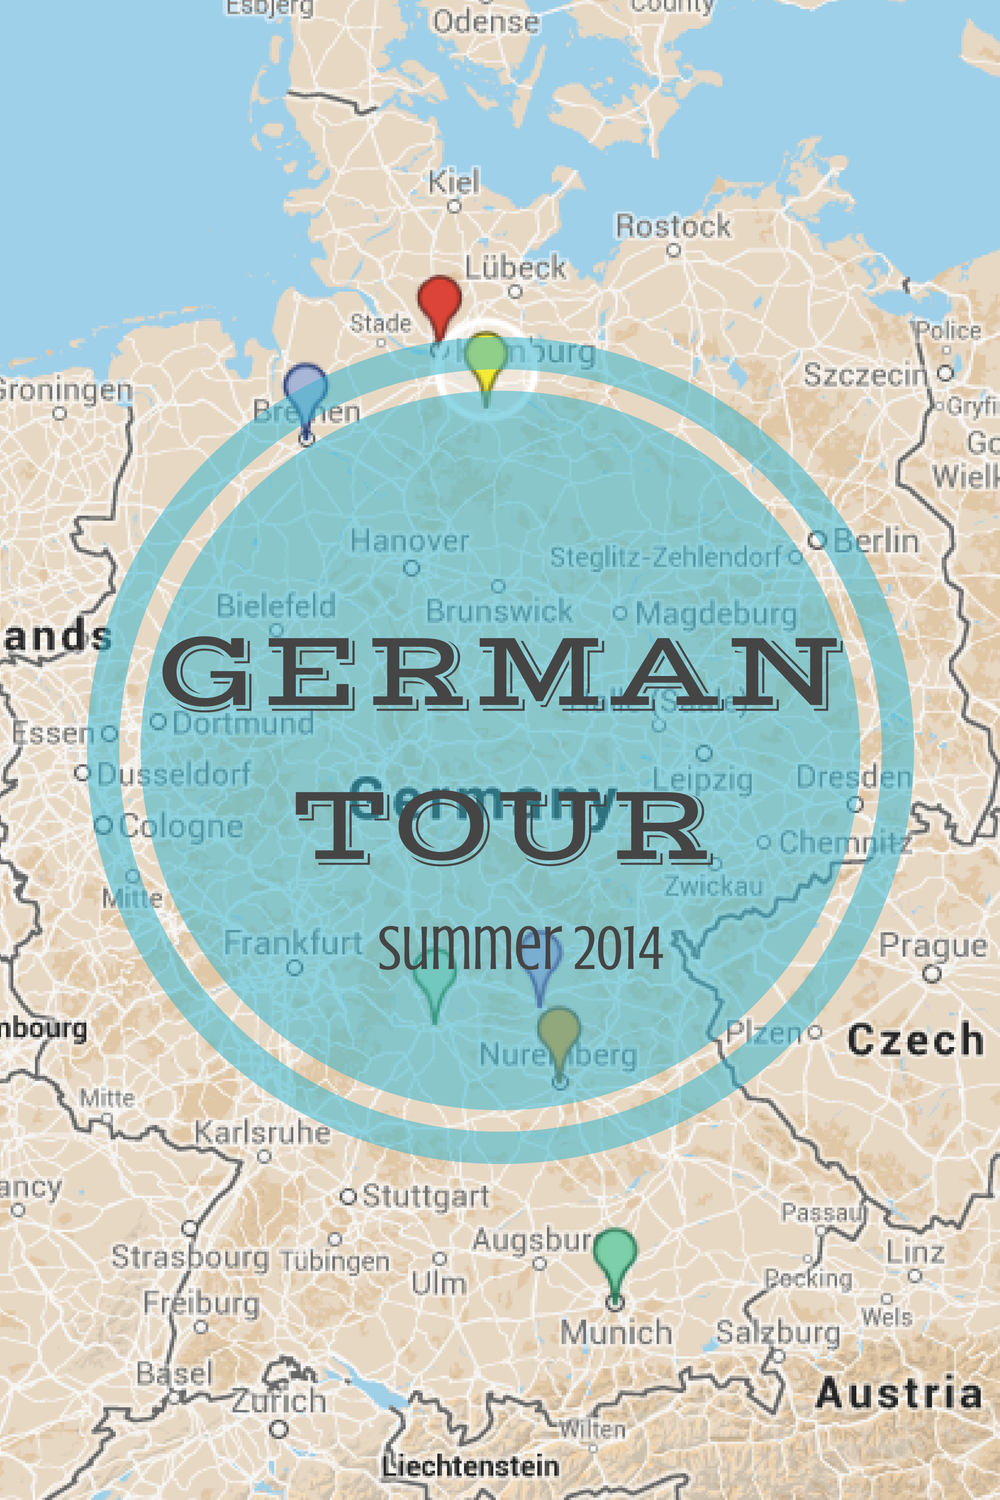 Summer Tour of Germany | Courtney the Ami